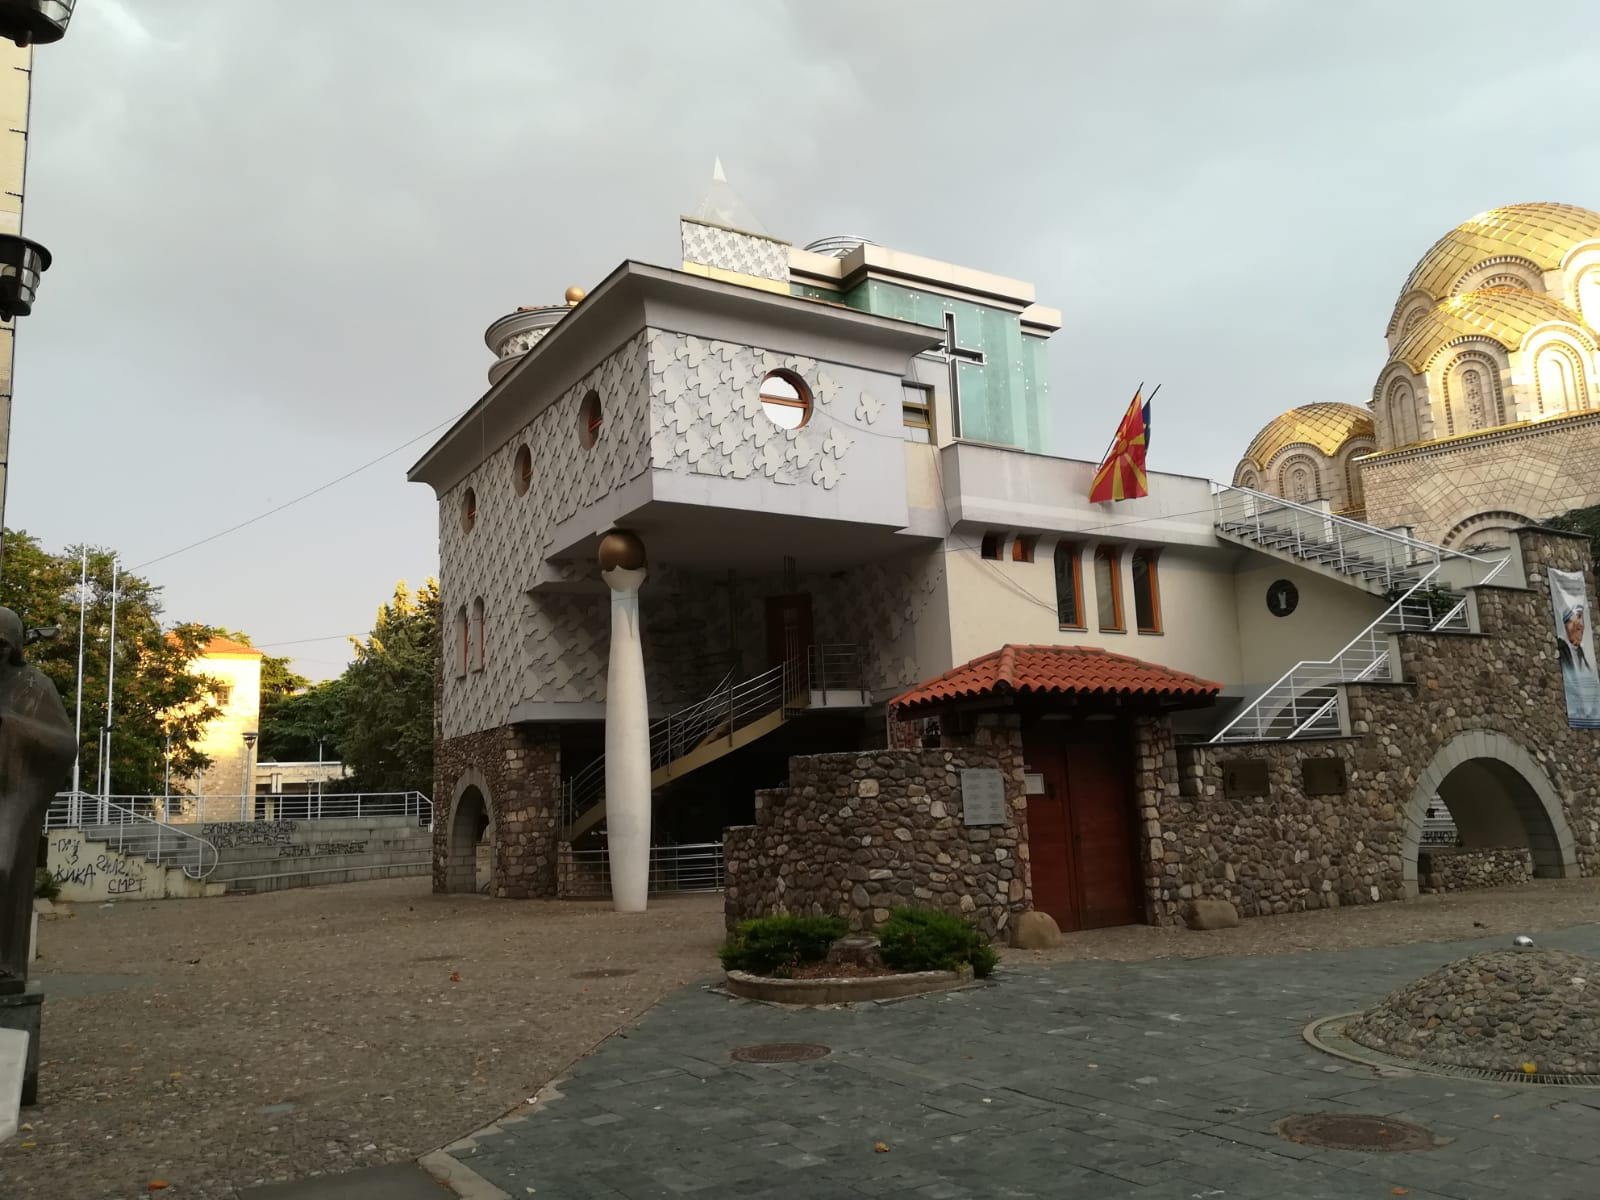 Memorial house of Madre Teresa Skopje